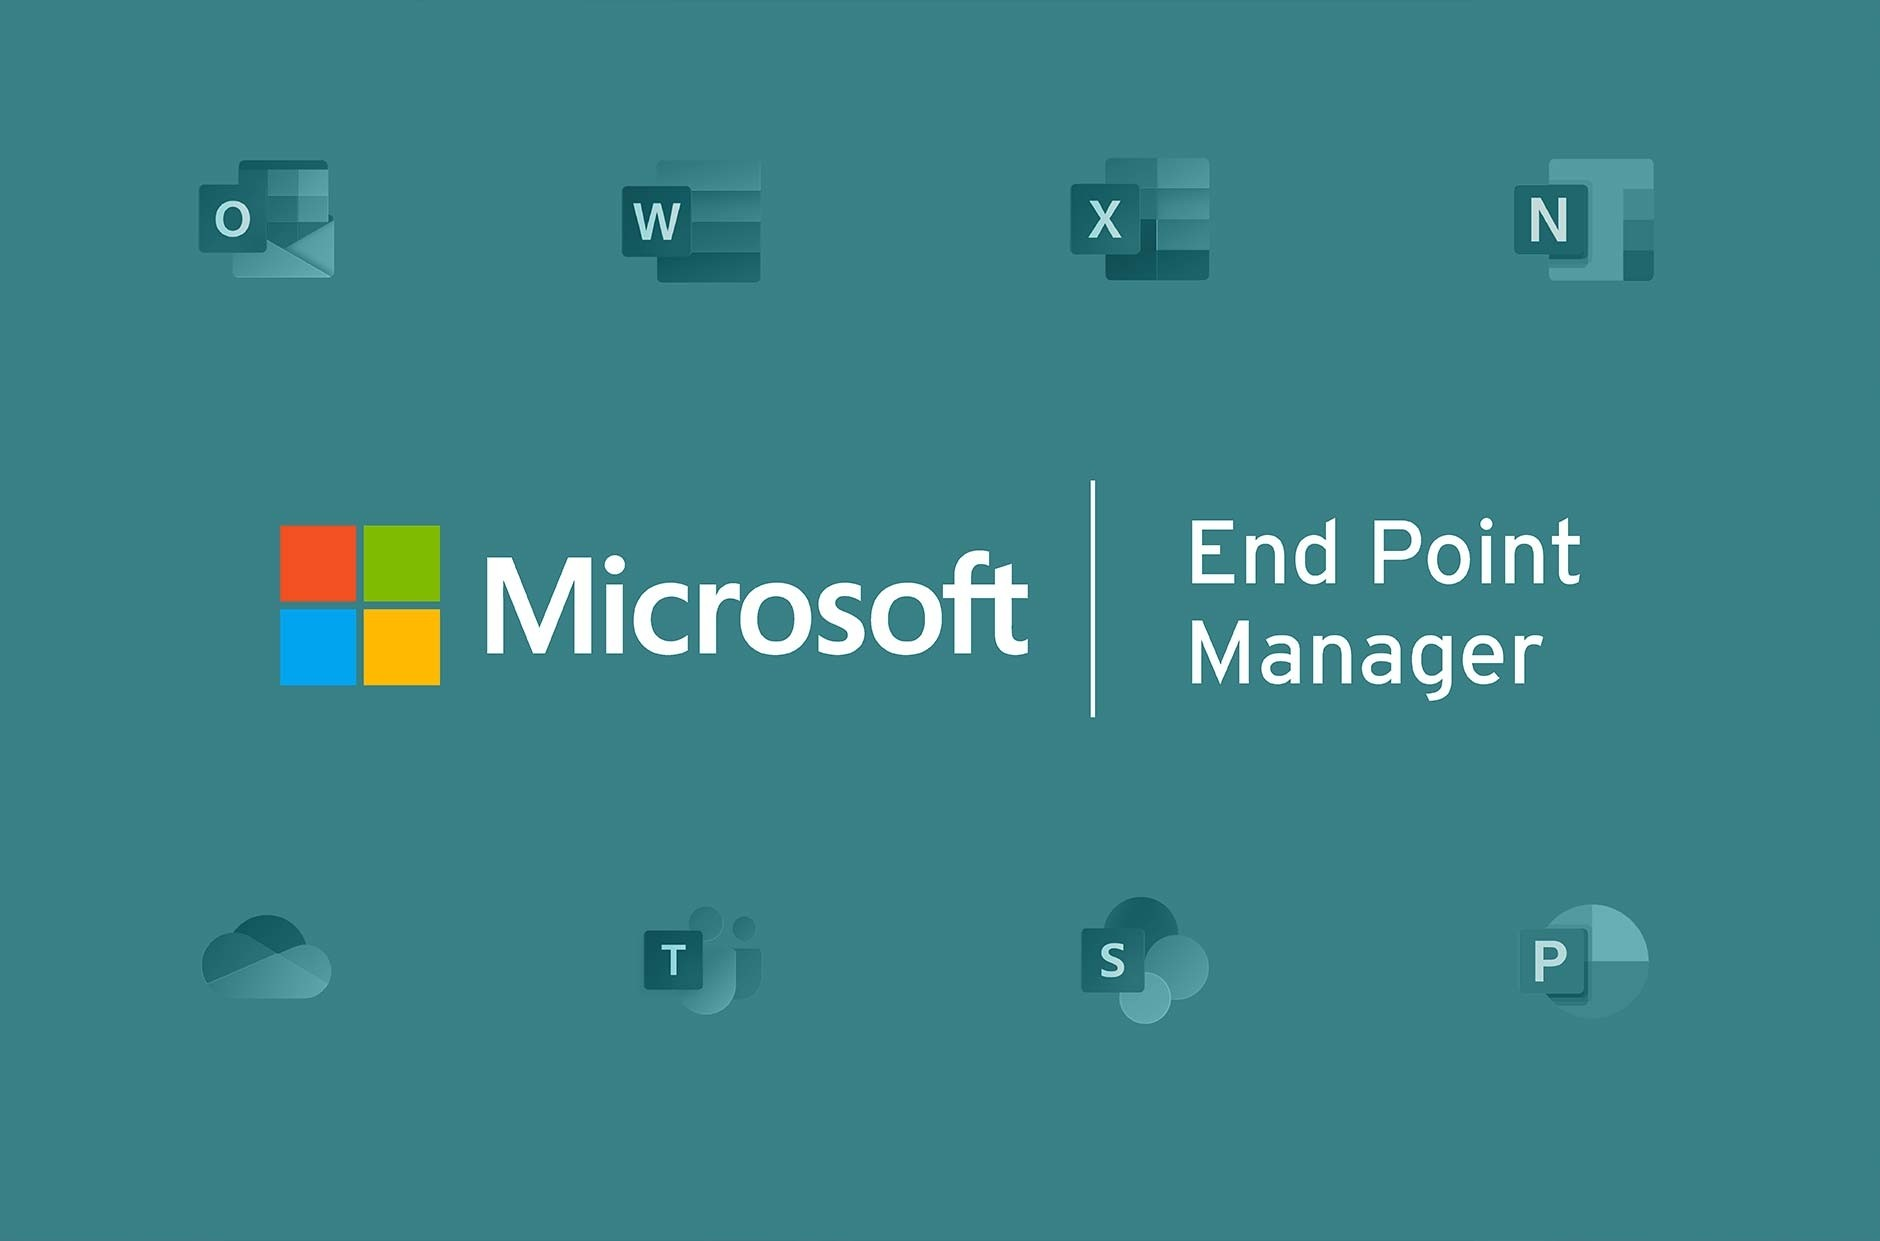 End point manager